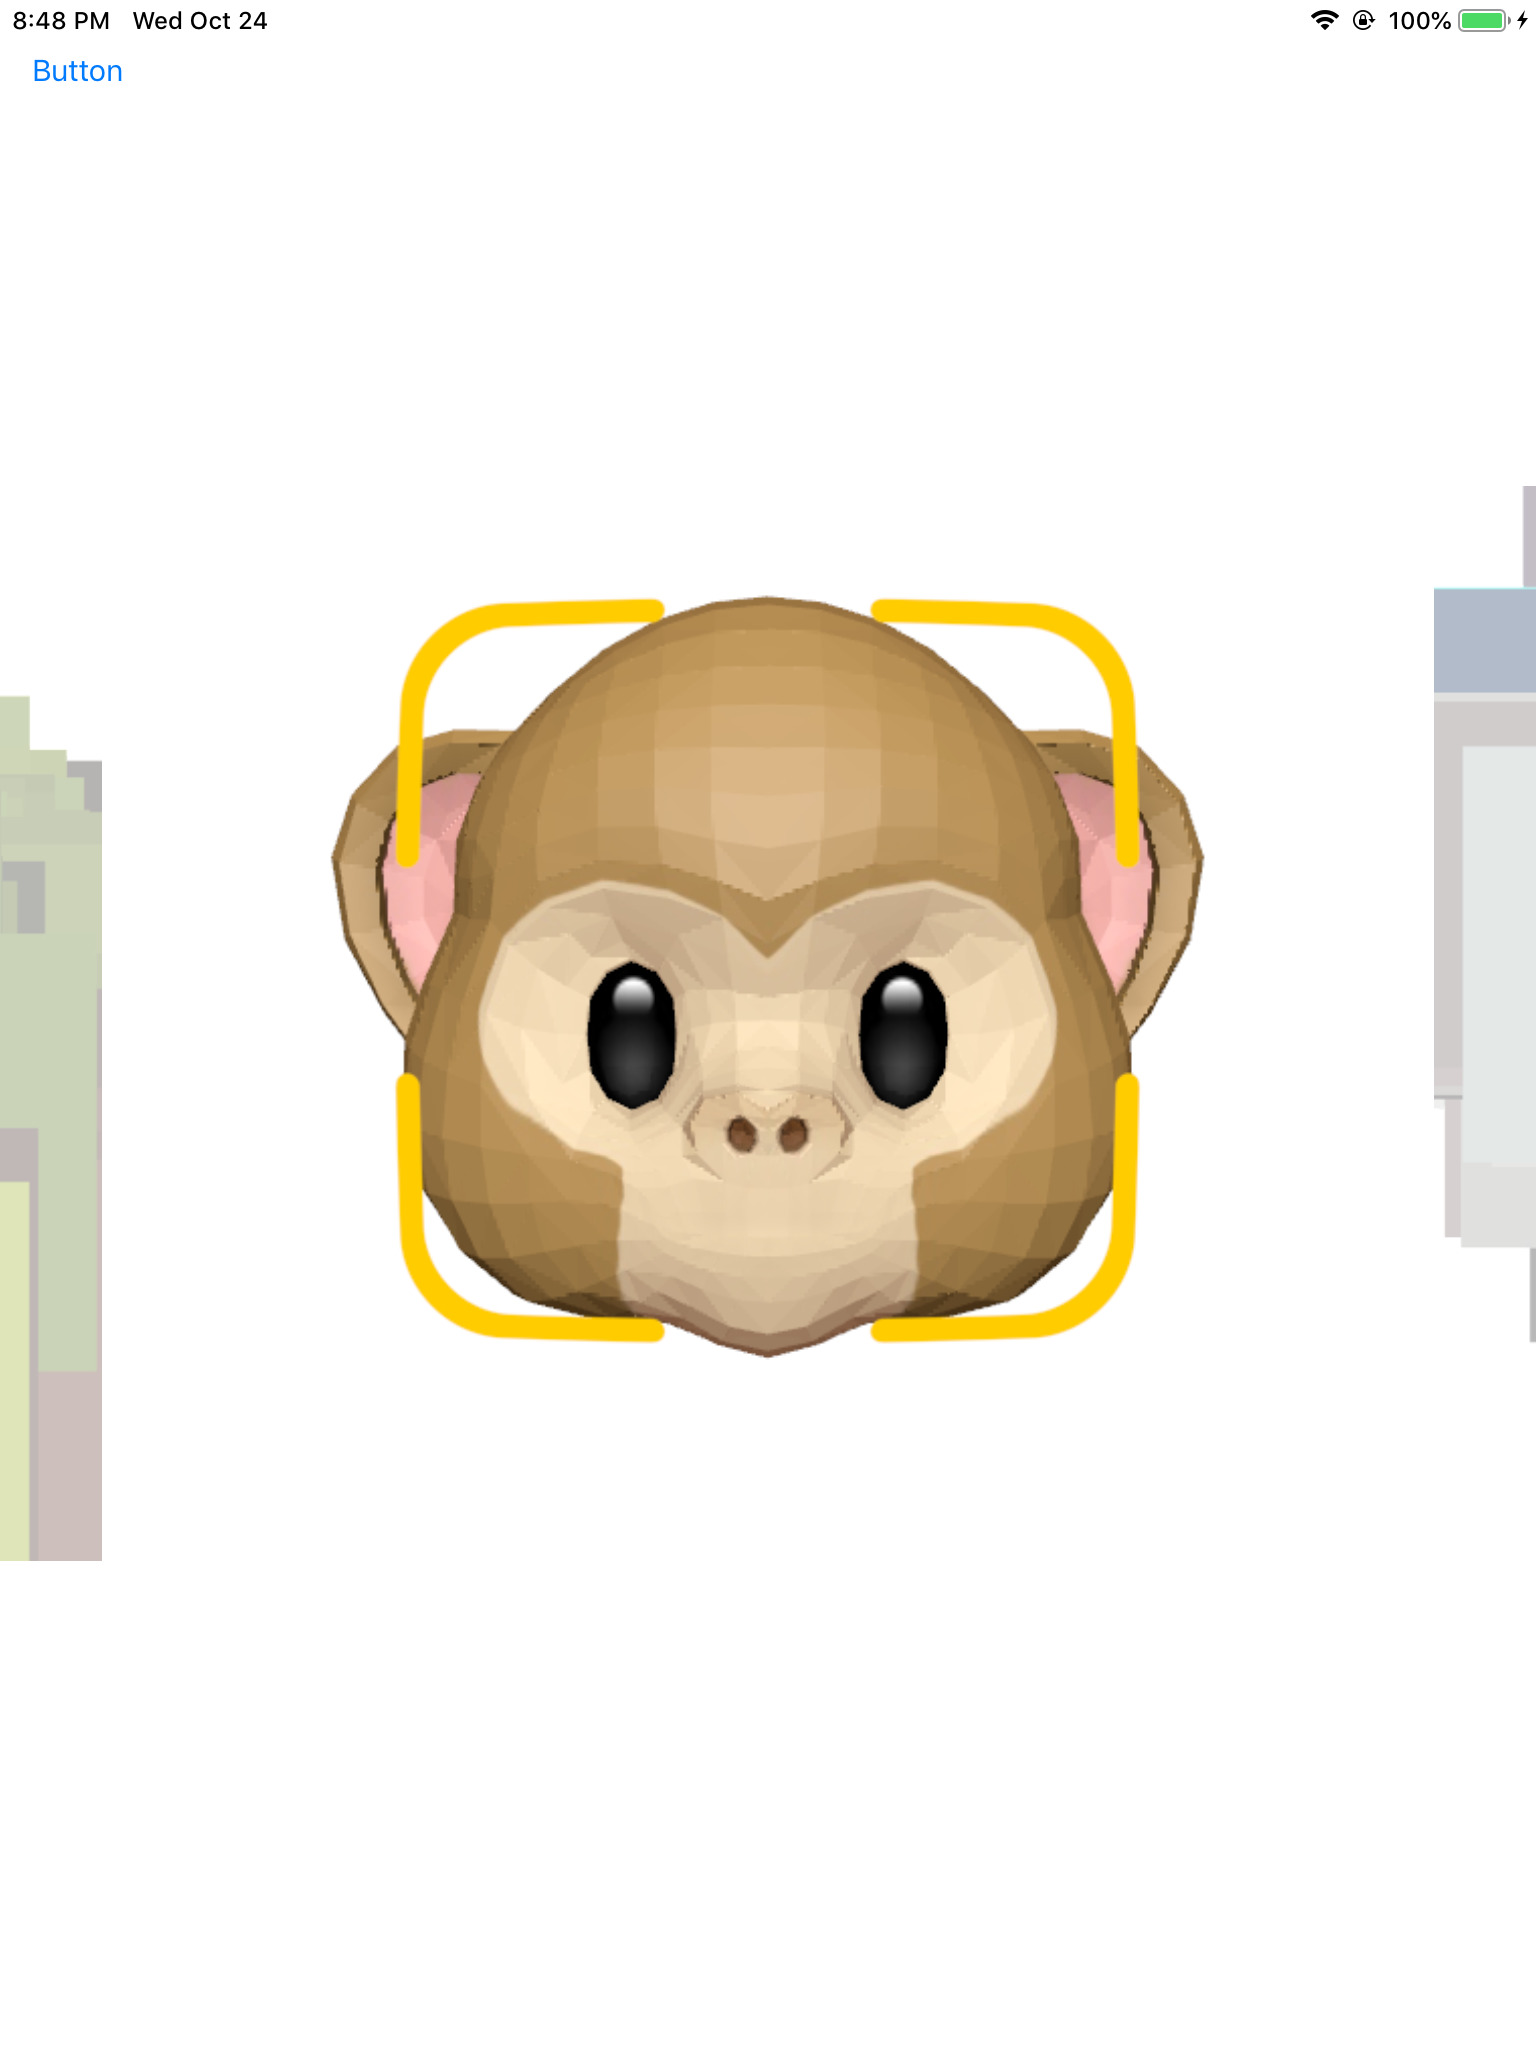 It's impossible to port Animoji to iPad Air | Worth Doing Badly